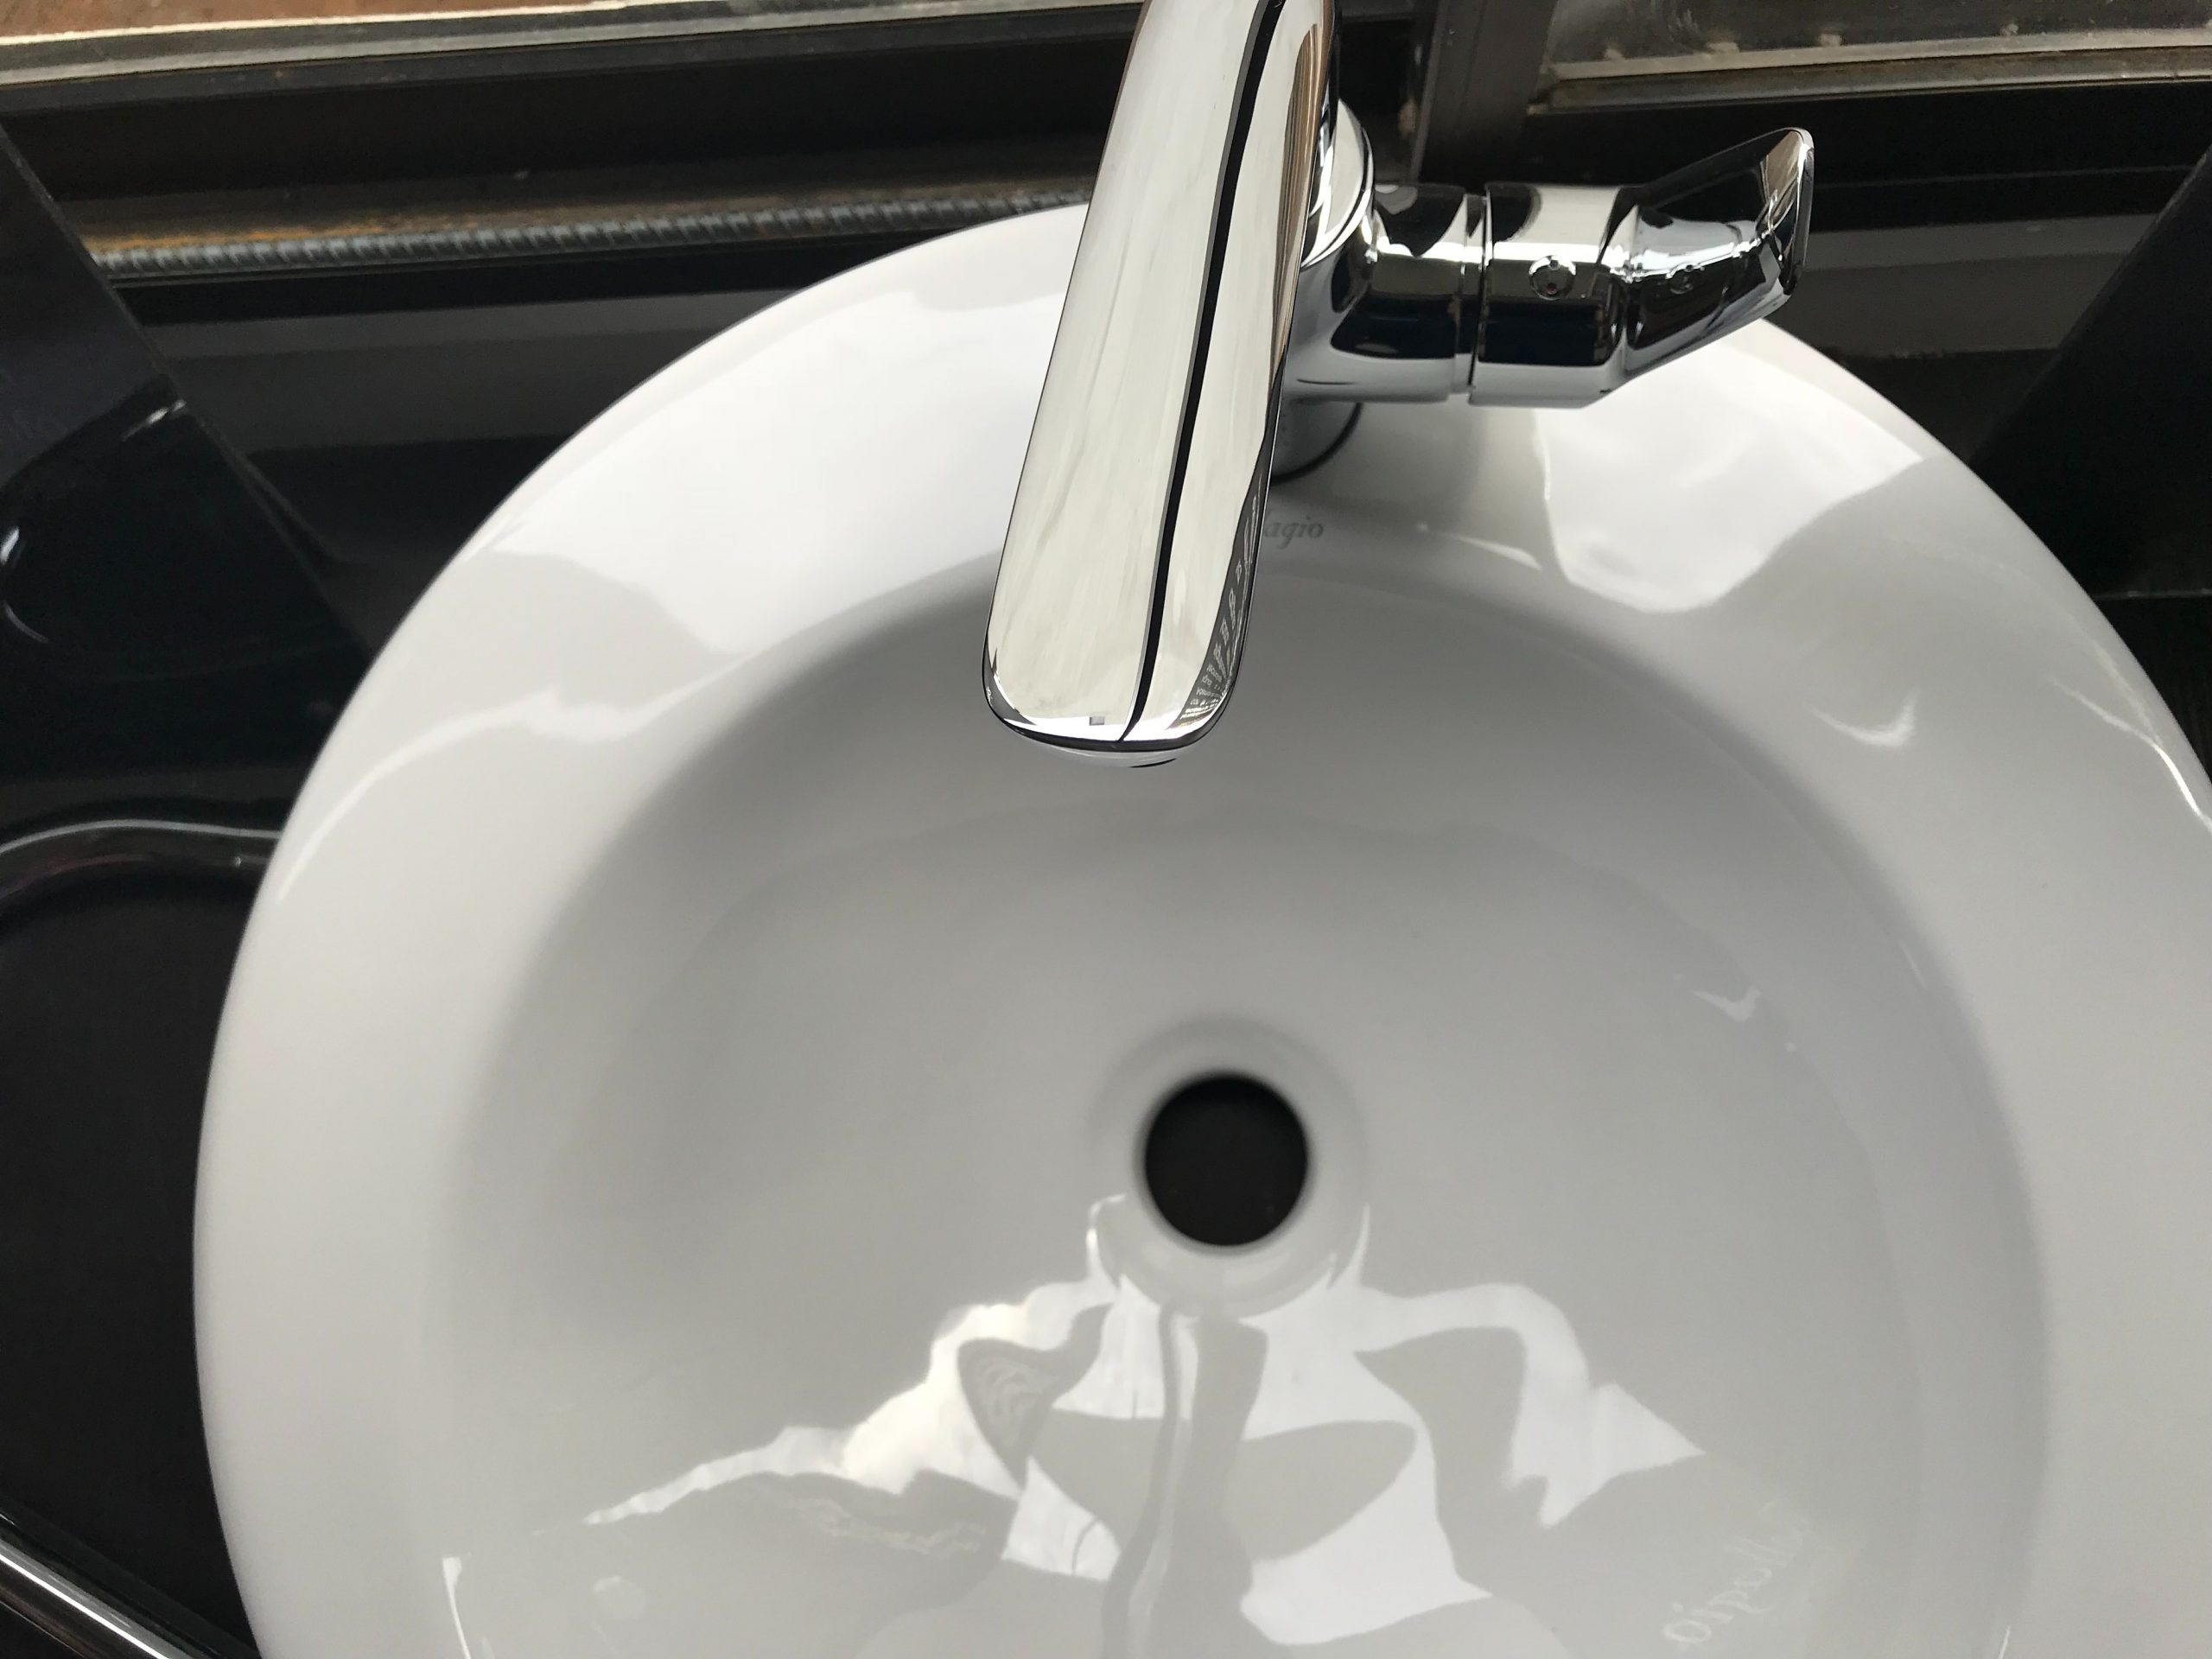 Picture of a bathroom sink.